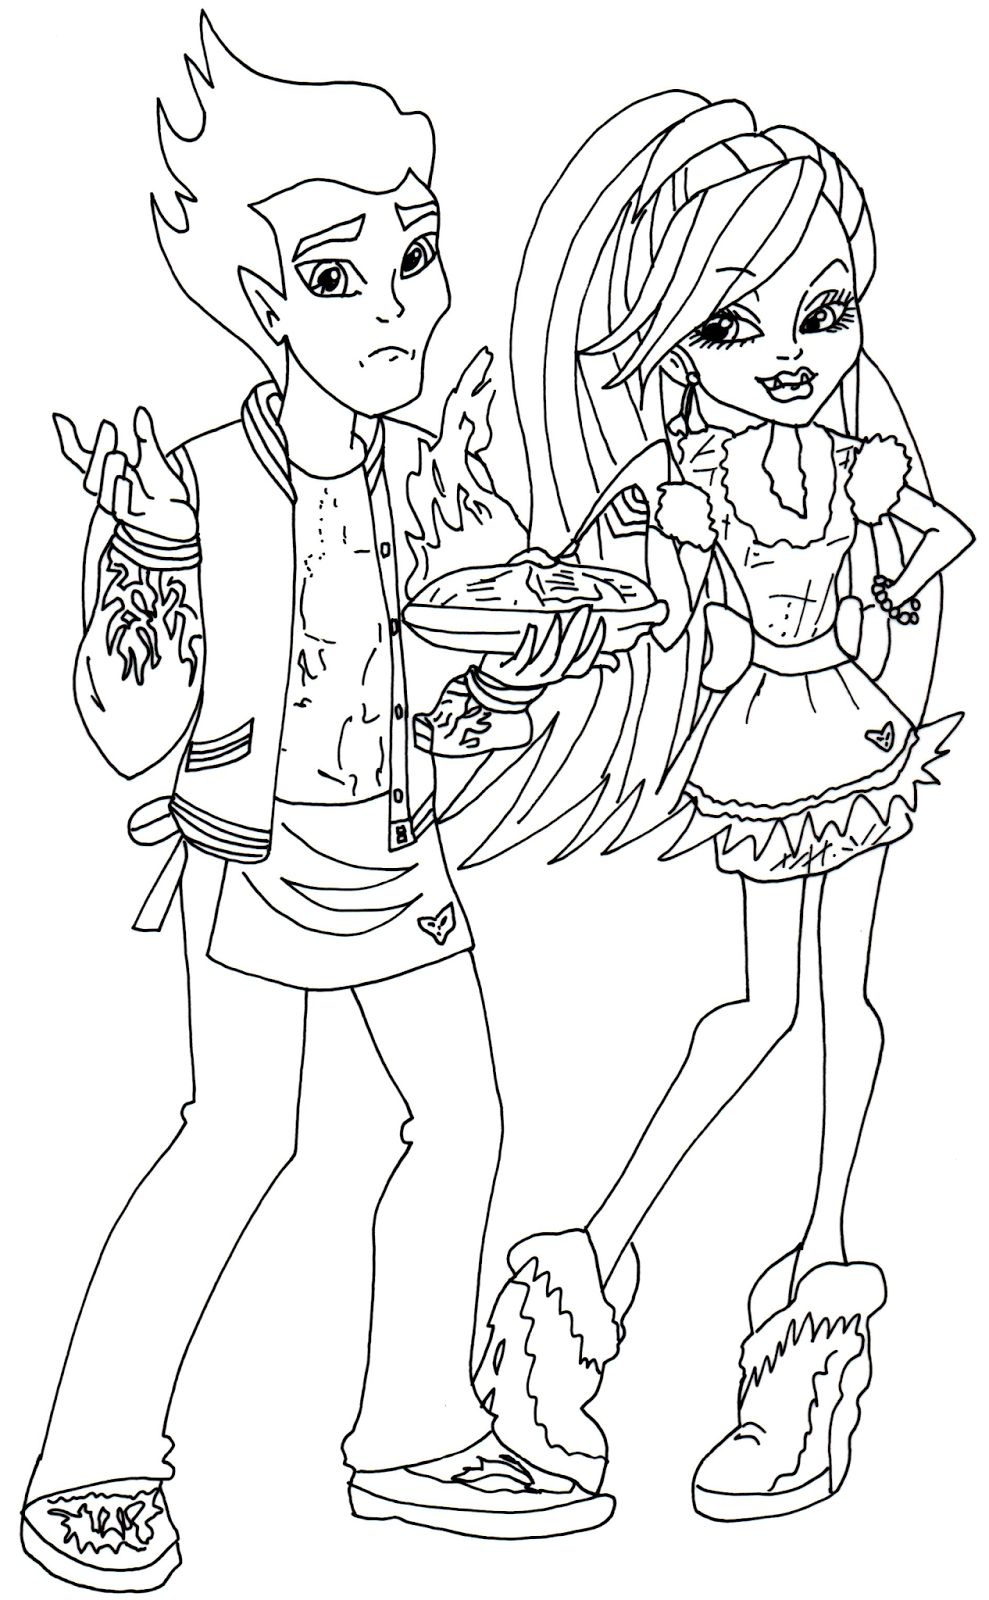 Free printable monster high coloring pages december 2013 for Monster high abbey coloring pages